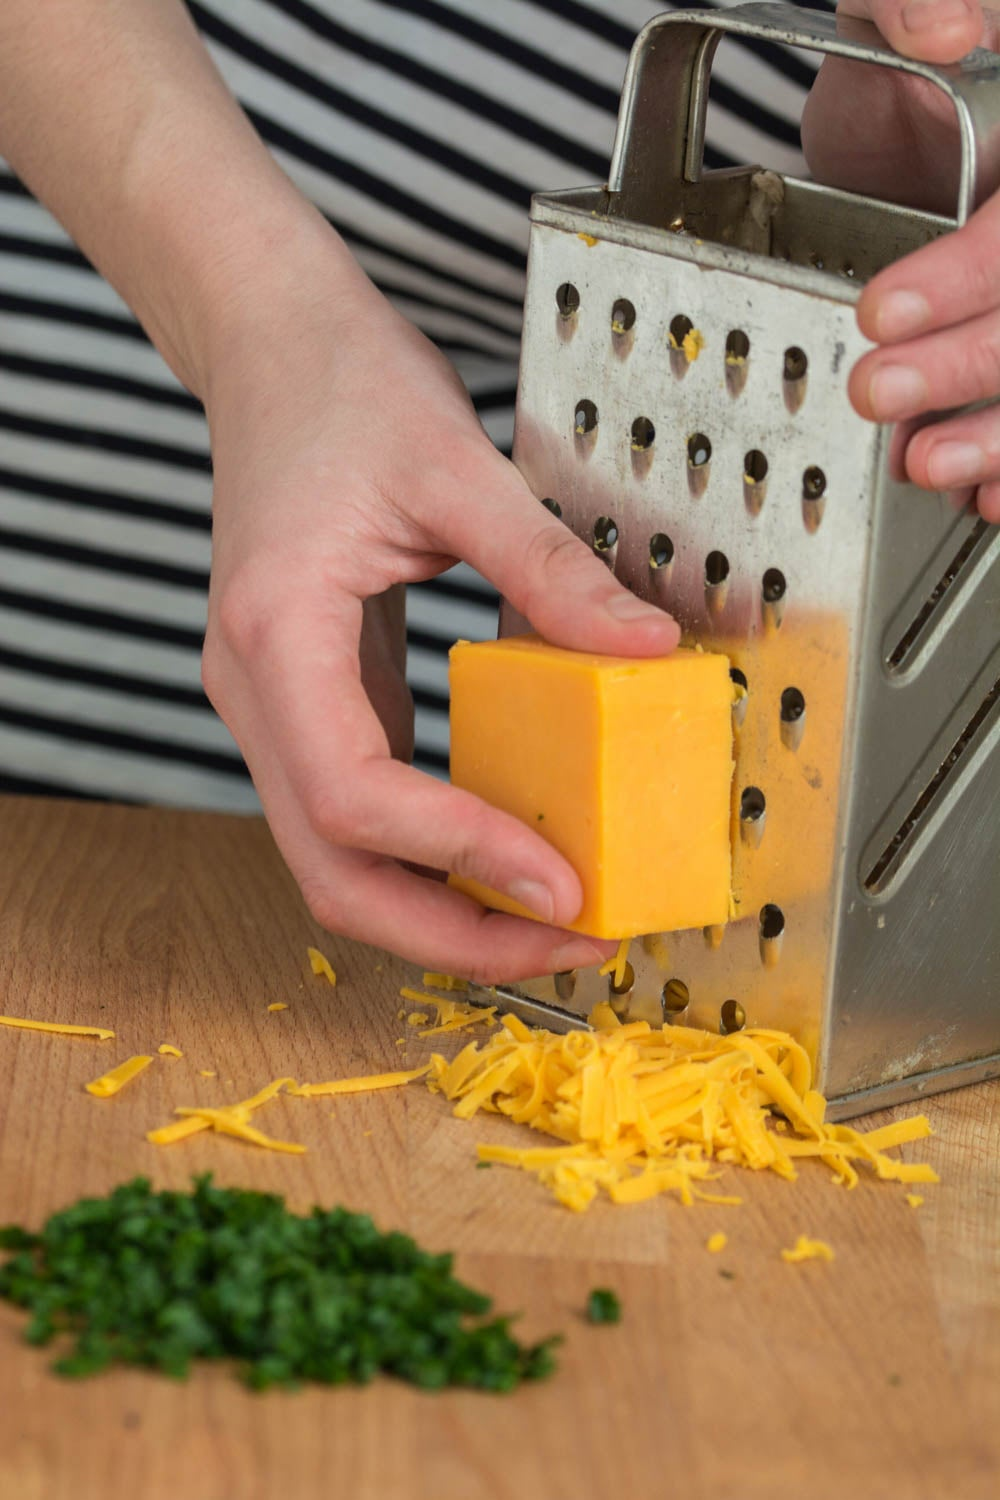 Grate the Cheese and Chop the Chives